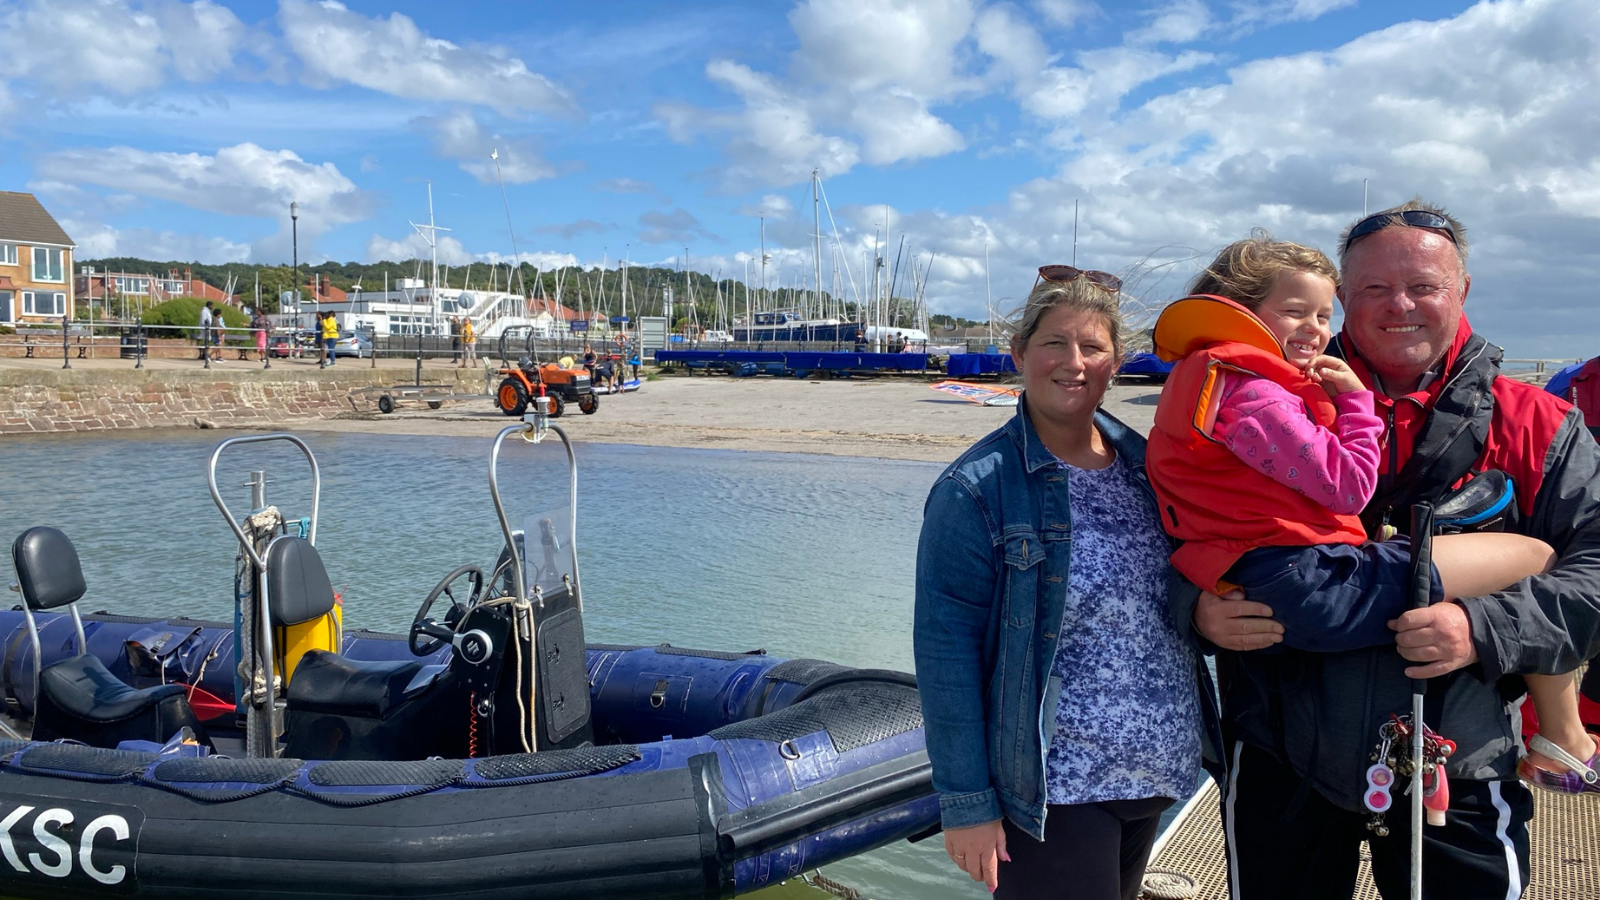 Dave Kelly - first blind man to pass powerboat course in UK